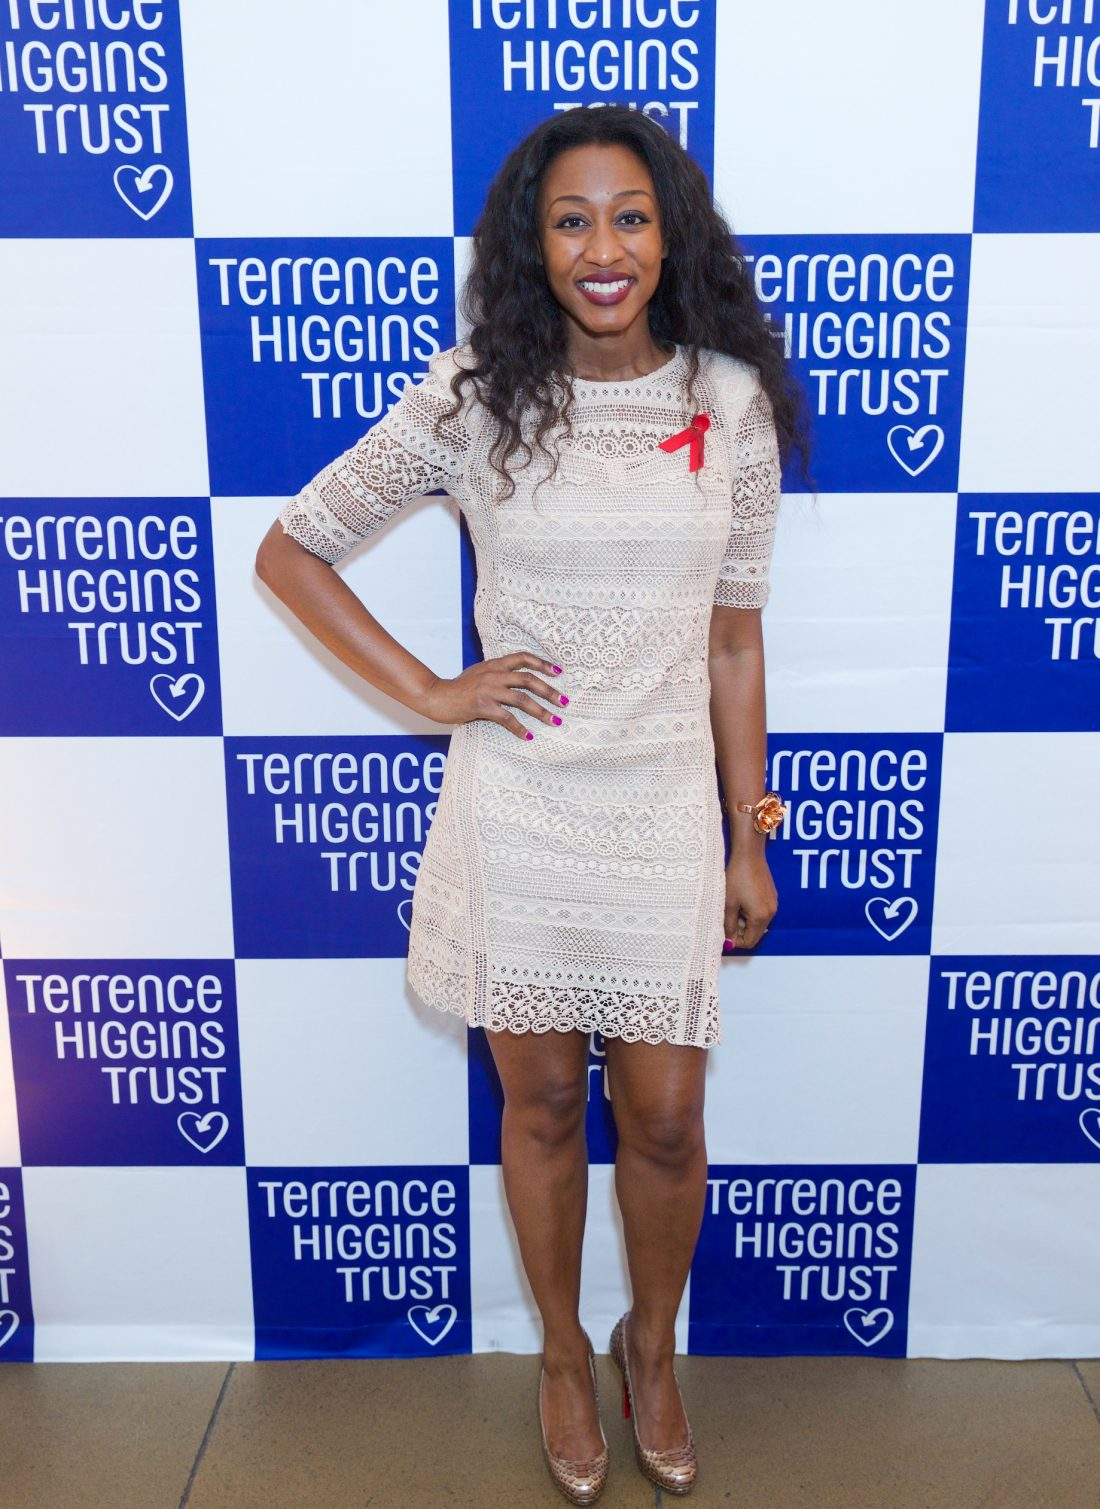 Beverley Knight joins the fight against HIV and AIDS